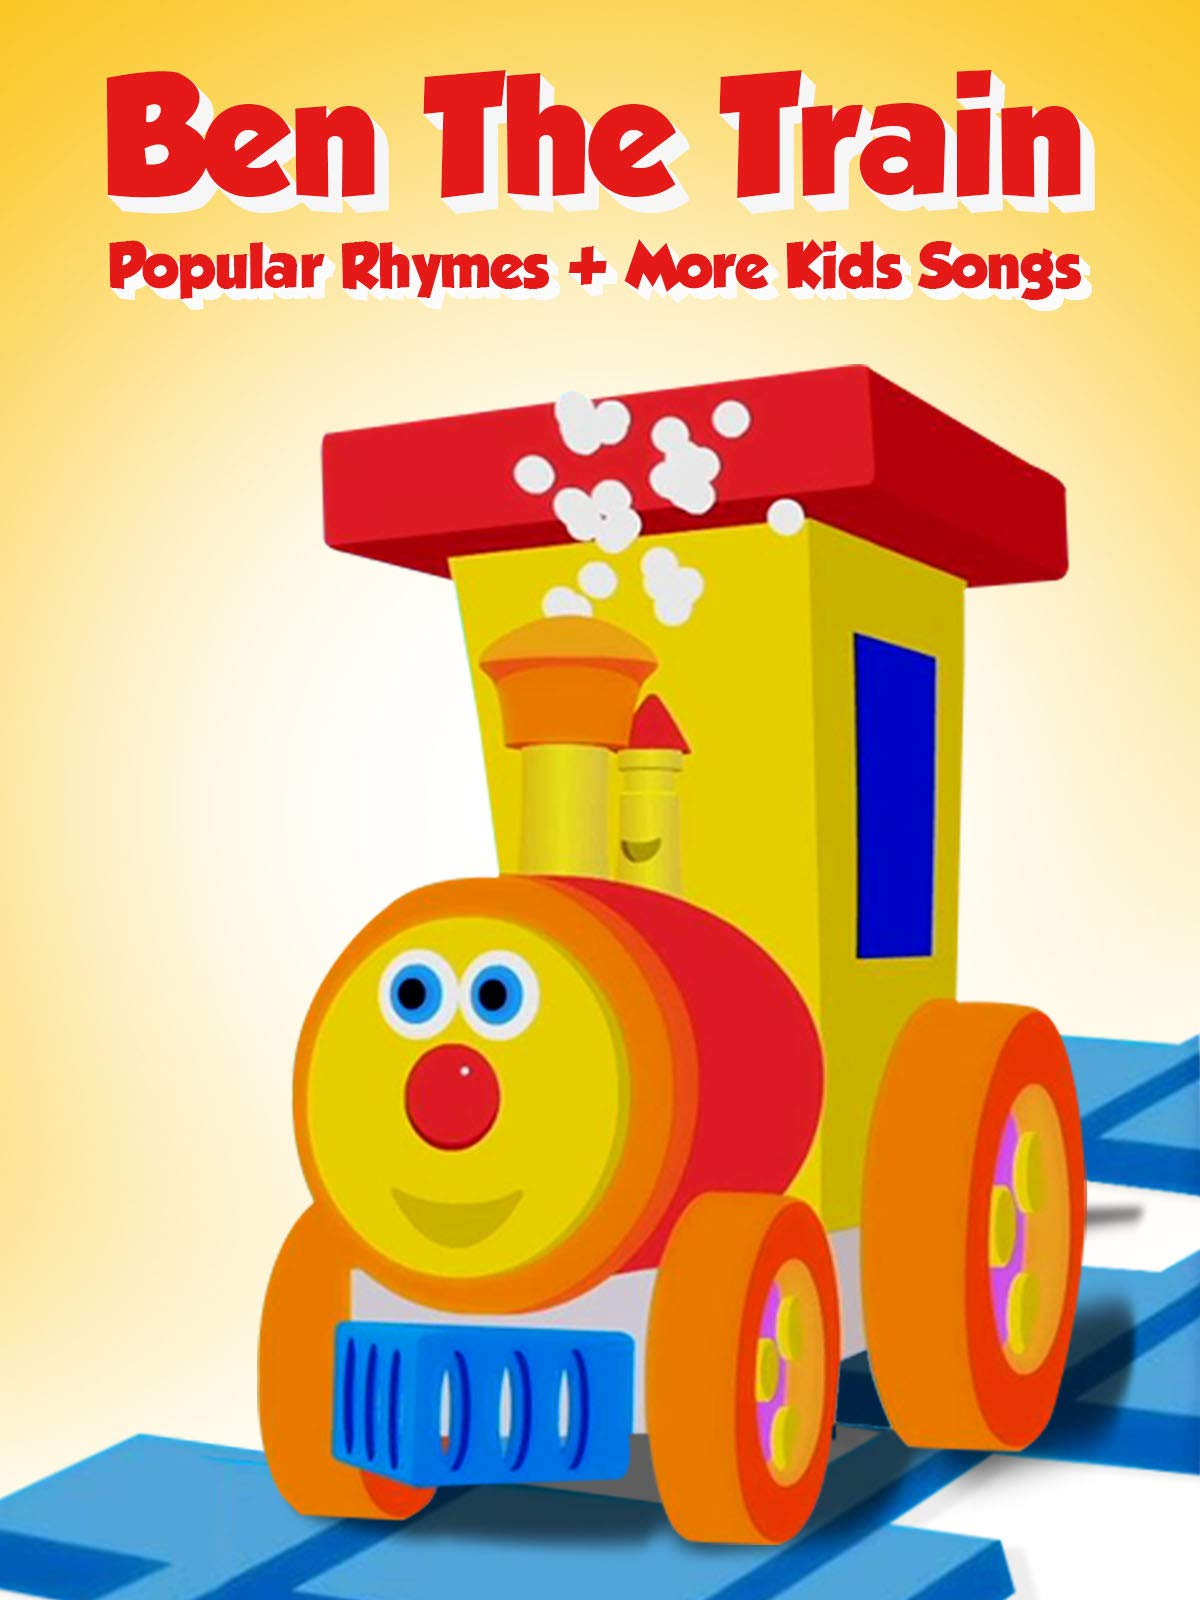 Ben the Train Popular Rhymes + More Kids Songs